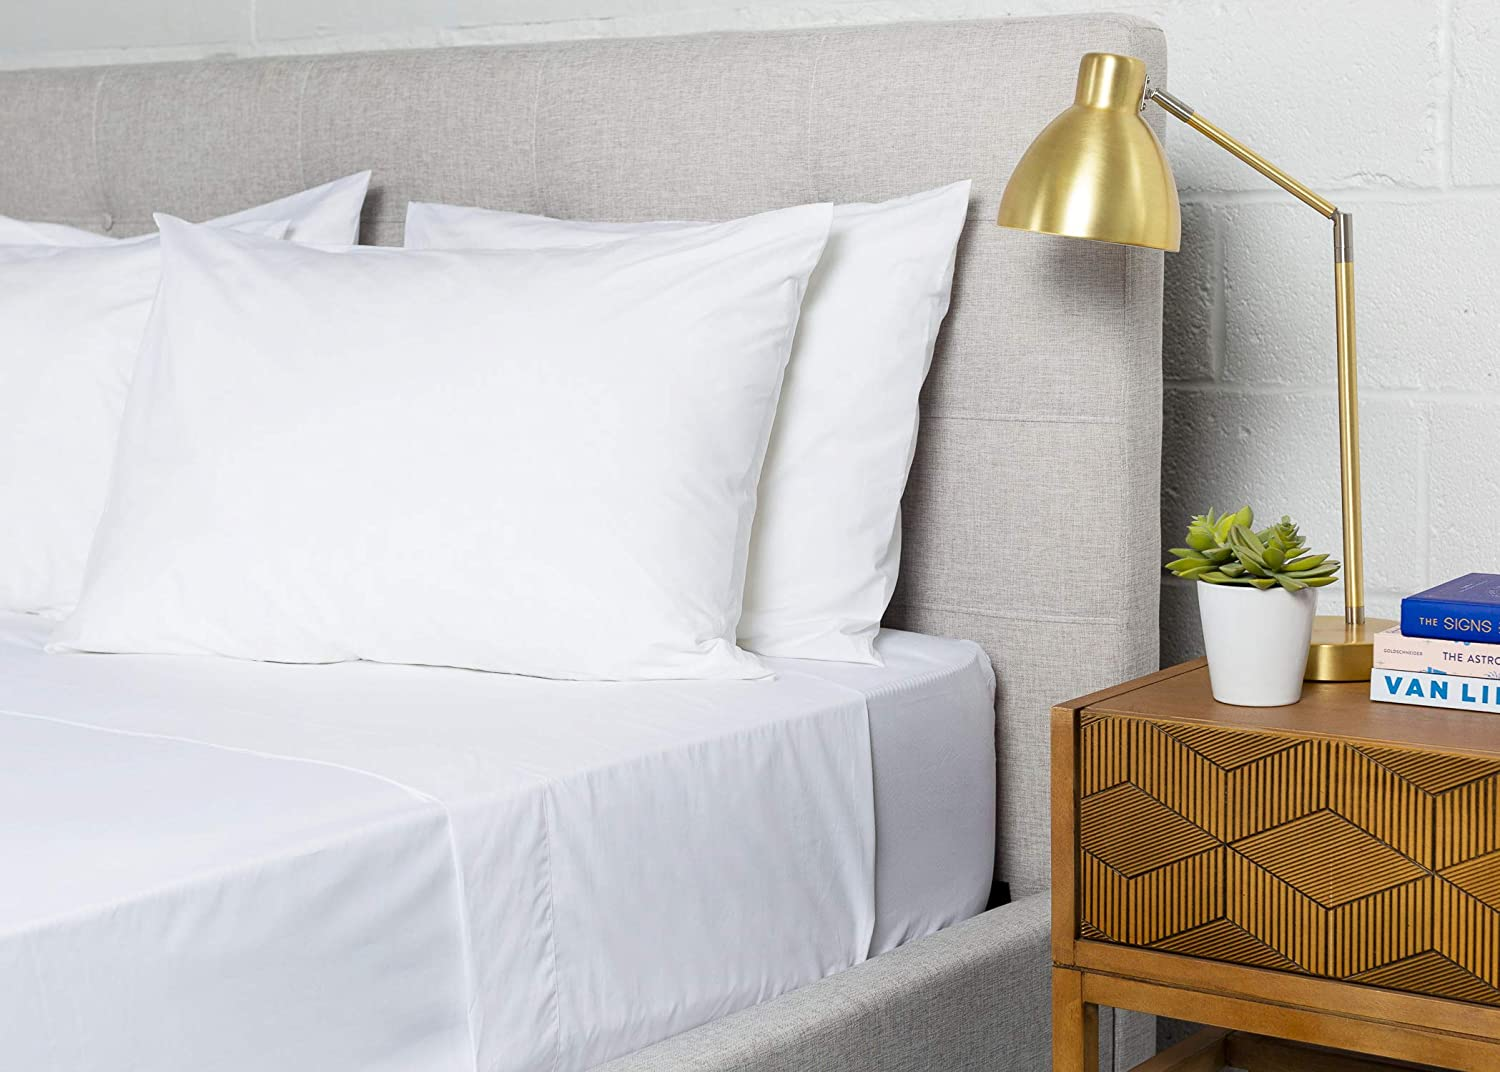 A bed made up with fresh and crisp percale weave cotton sheets.